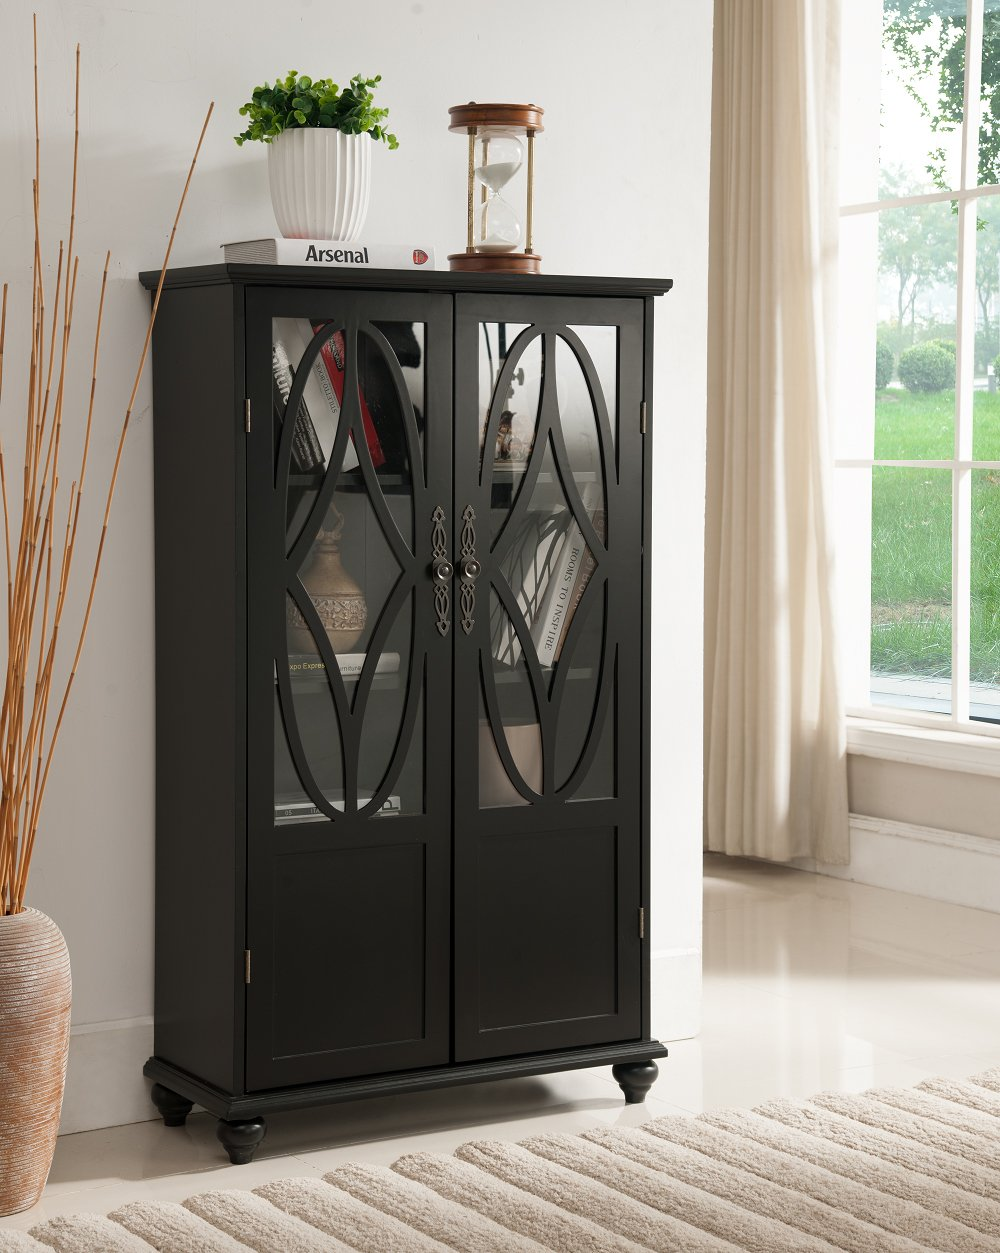 Kings Brand Furniture- Halswelle 2-Door Black Curio Bookcase Cabinet with Glass Doors by Kings Brand Furniture